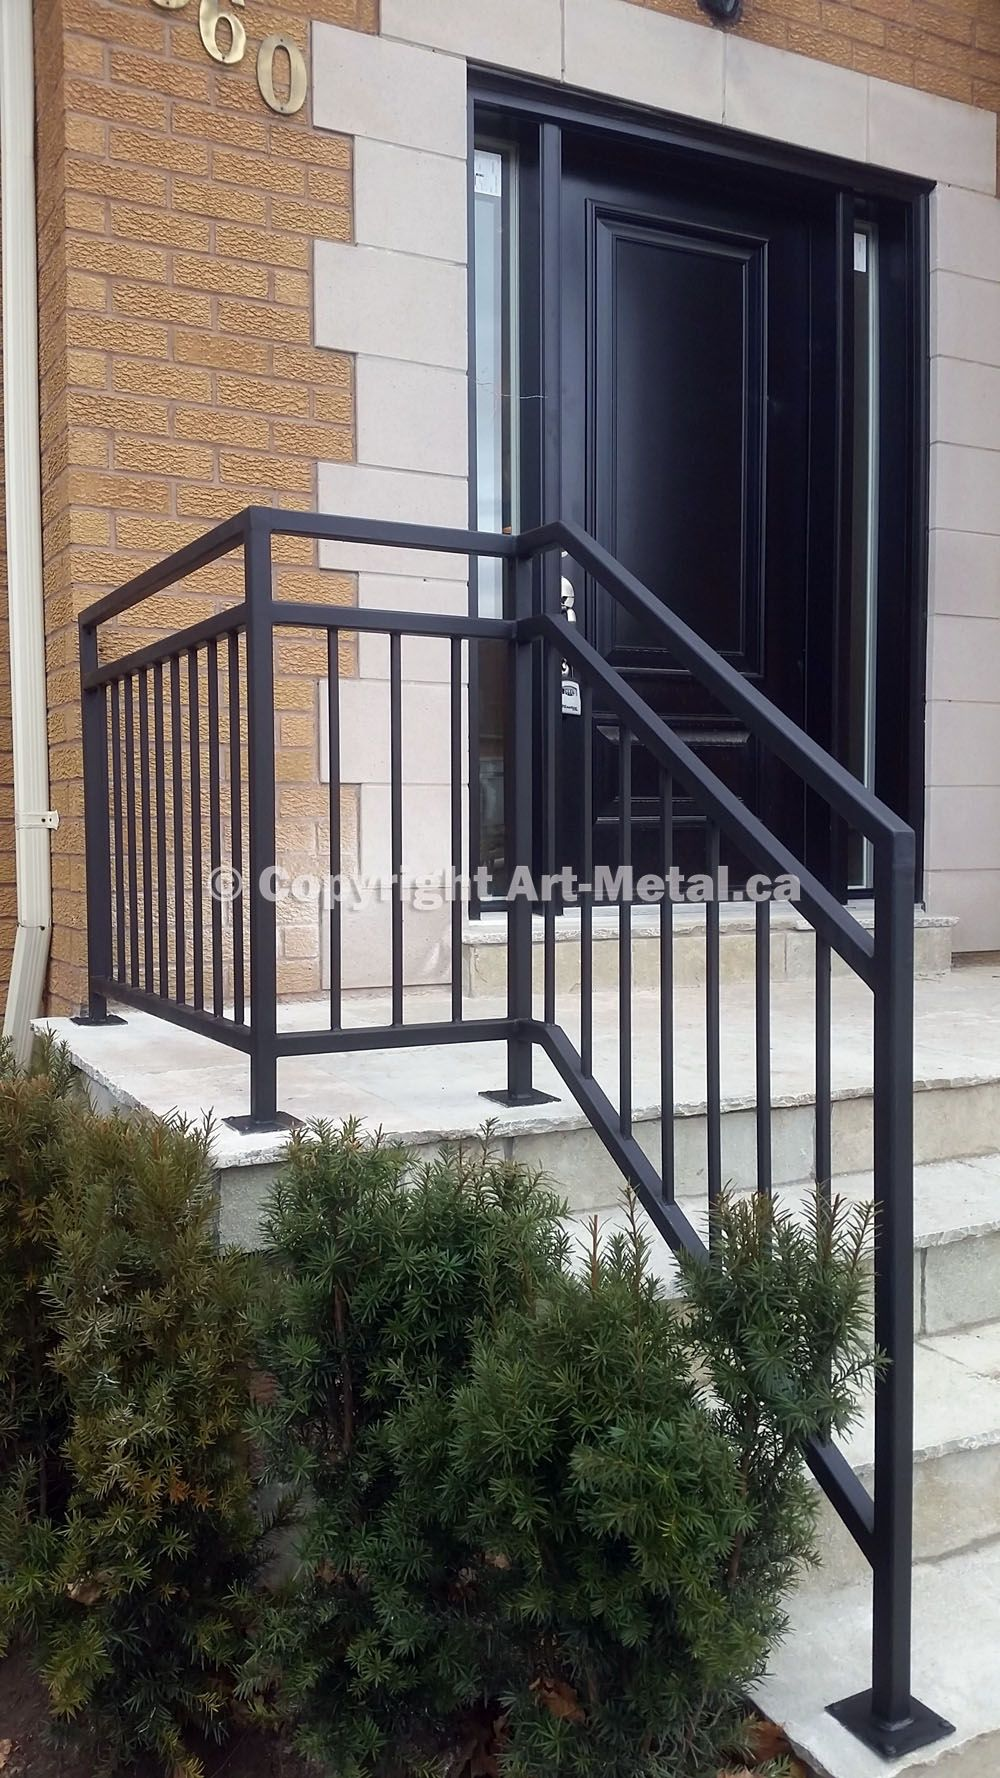 Best Exterior Railings Handrails For Stairs Porches Decks 400 x 300